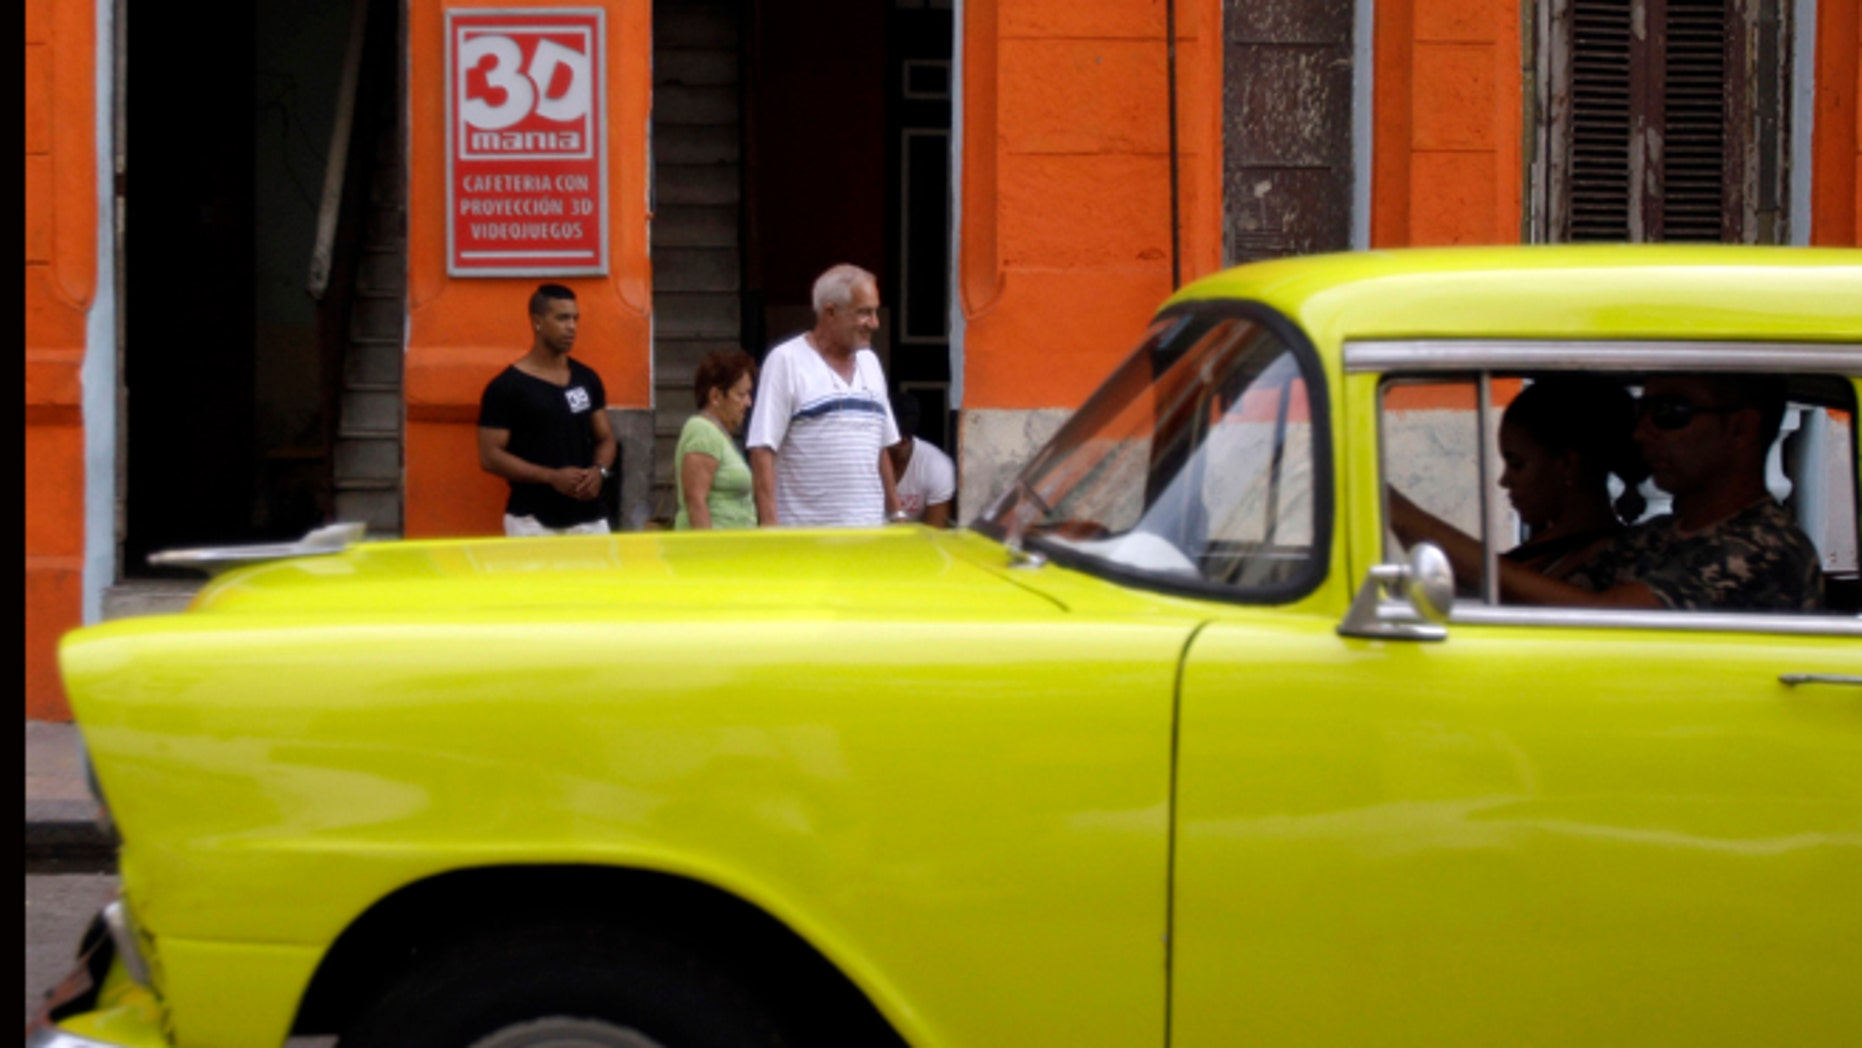 """A classic American car that is used as a taxi passes by the entrance of a private movie theater called """"3D Mania"""" in Havana, Cuba, Monday, Oct. 28, 2013. Cuban entrepreneurs have quietly opened dozens of backroom video salons over the last year, seizing on ambiguities in licensing laws to transform cafes and childrenâs entertainment parlors into a new breed of private business unforeseen by recent official openings in the communist economy. (AP Photo/Franklin Reyes)"""